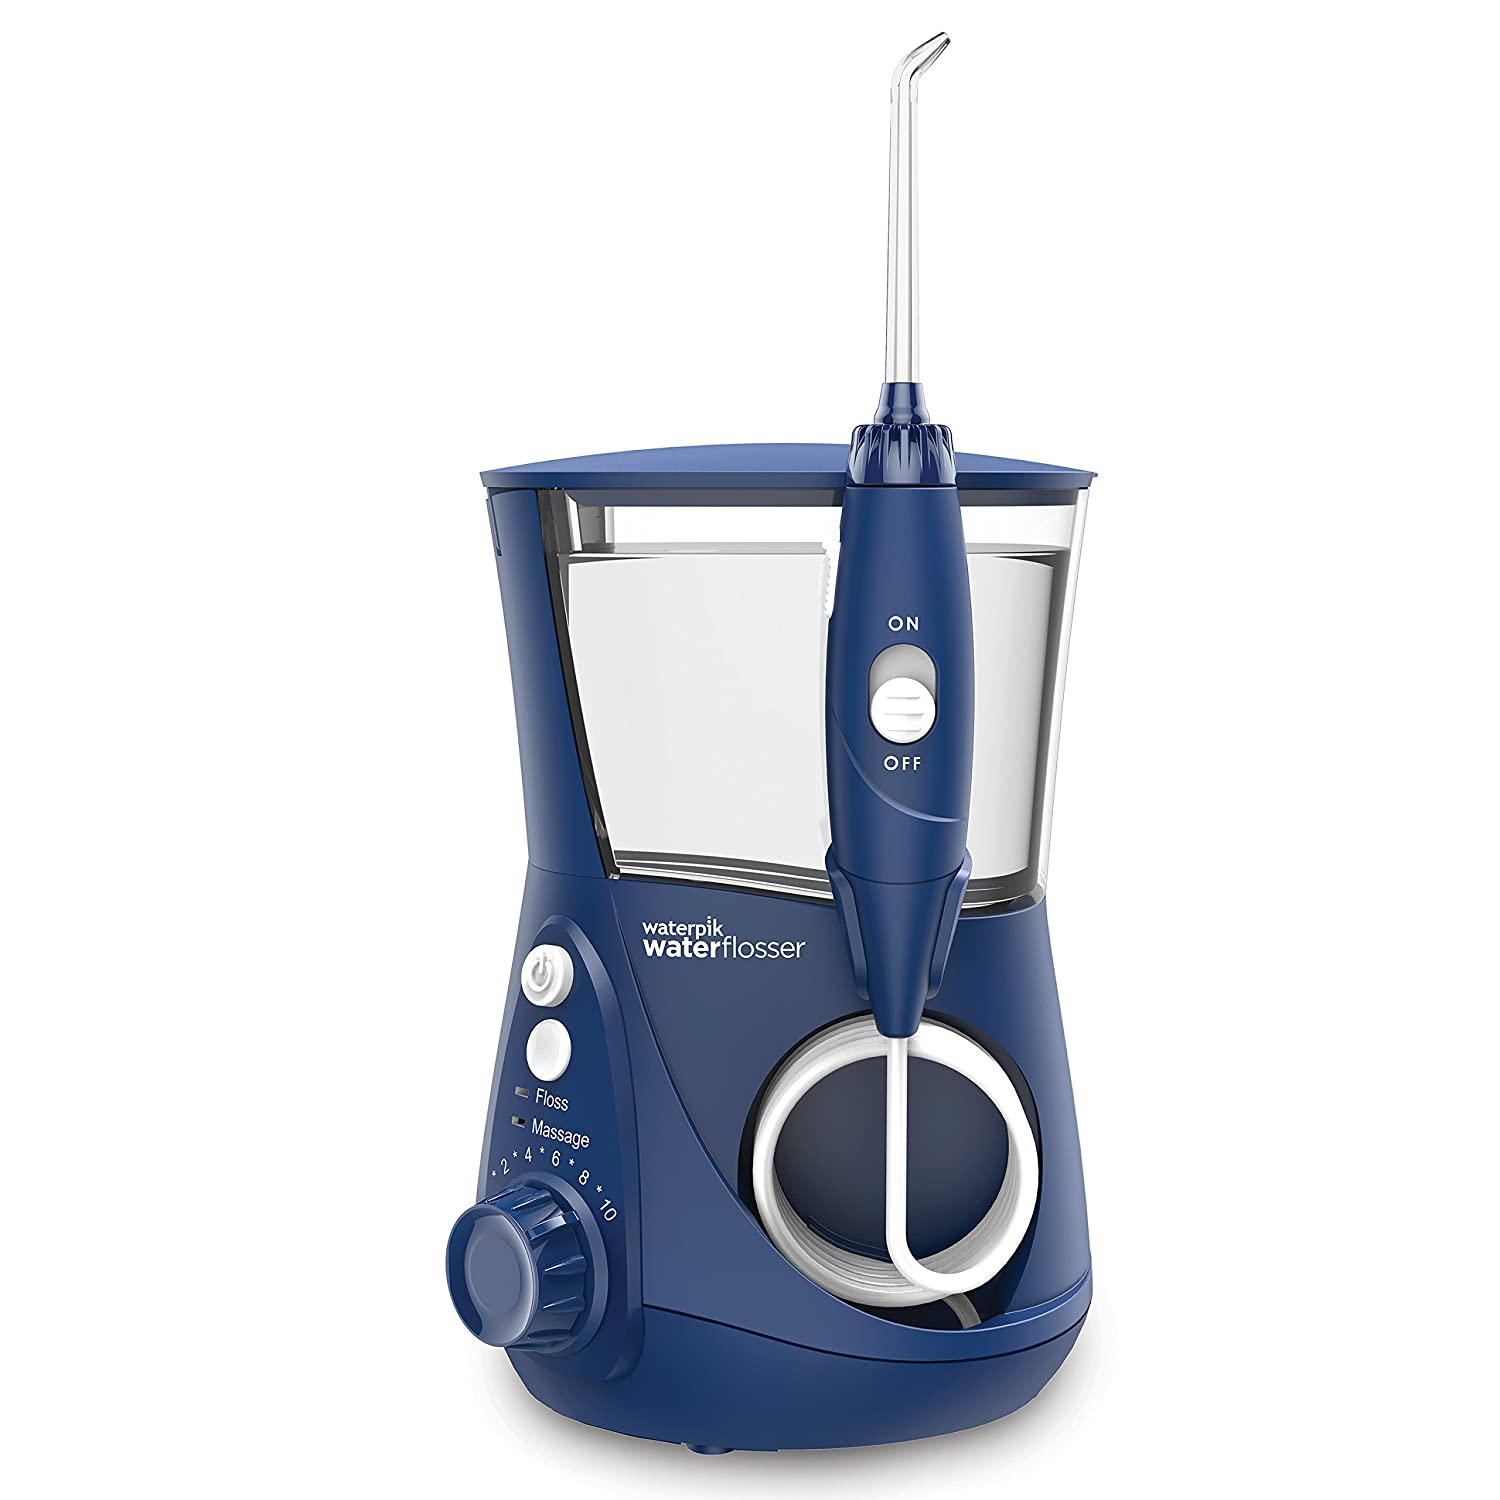 Waterpik WP-663 Water Flosser Electric Dental Countertop Professional Oral Irrigator For Teeth, Aquarius, Blue